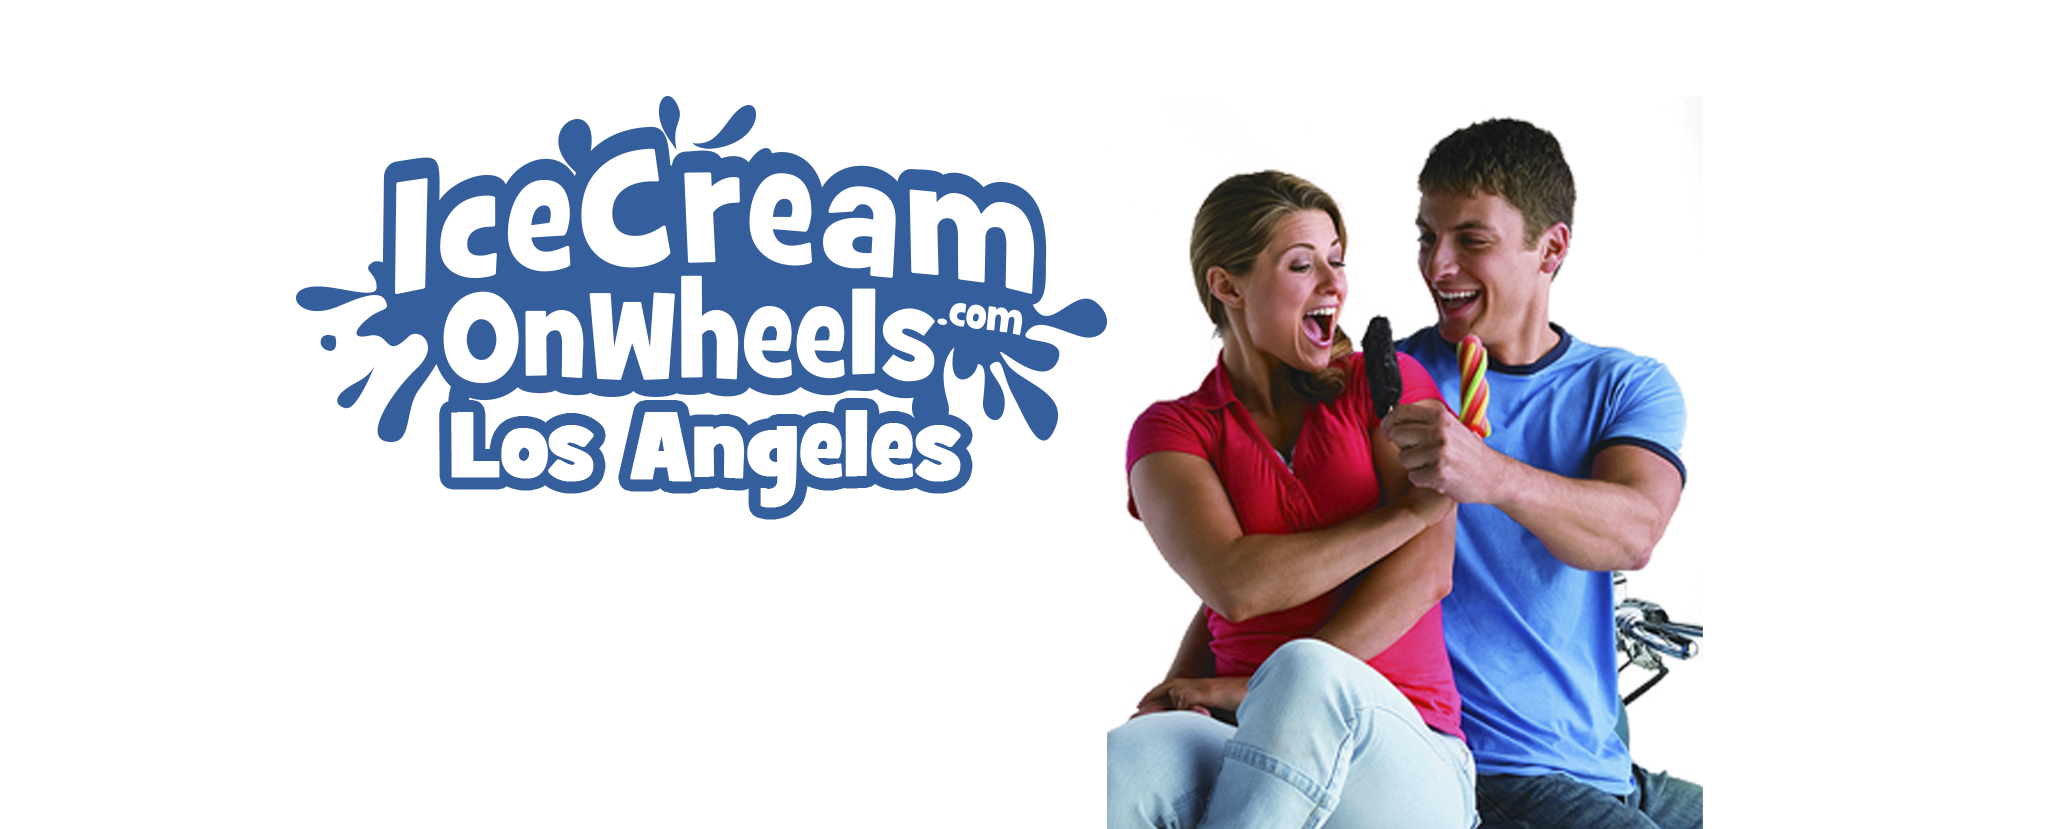 School Events Ice Cream Trucks San Bernardino County